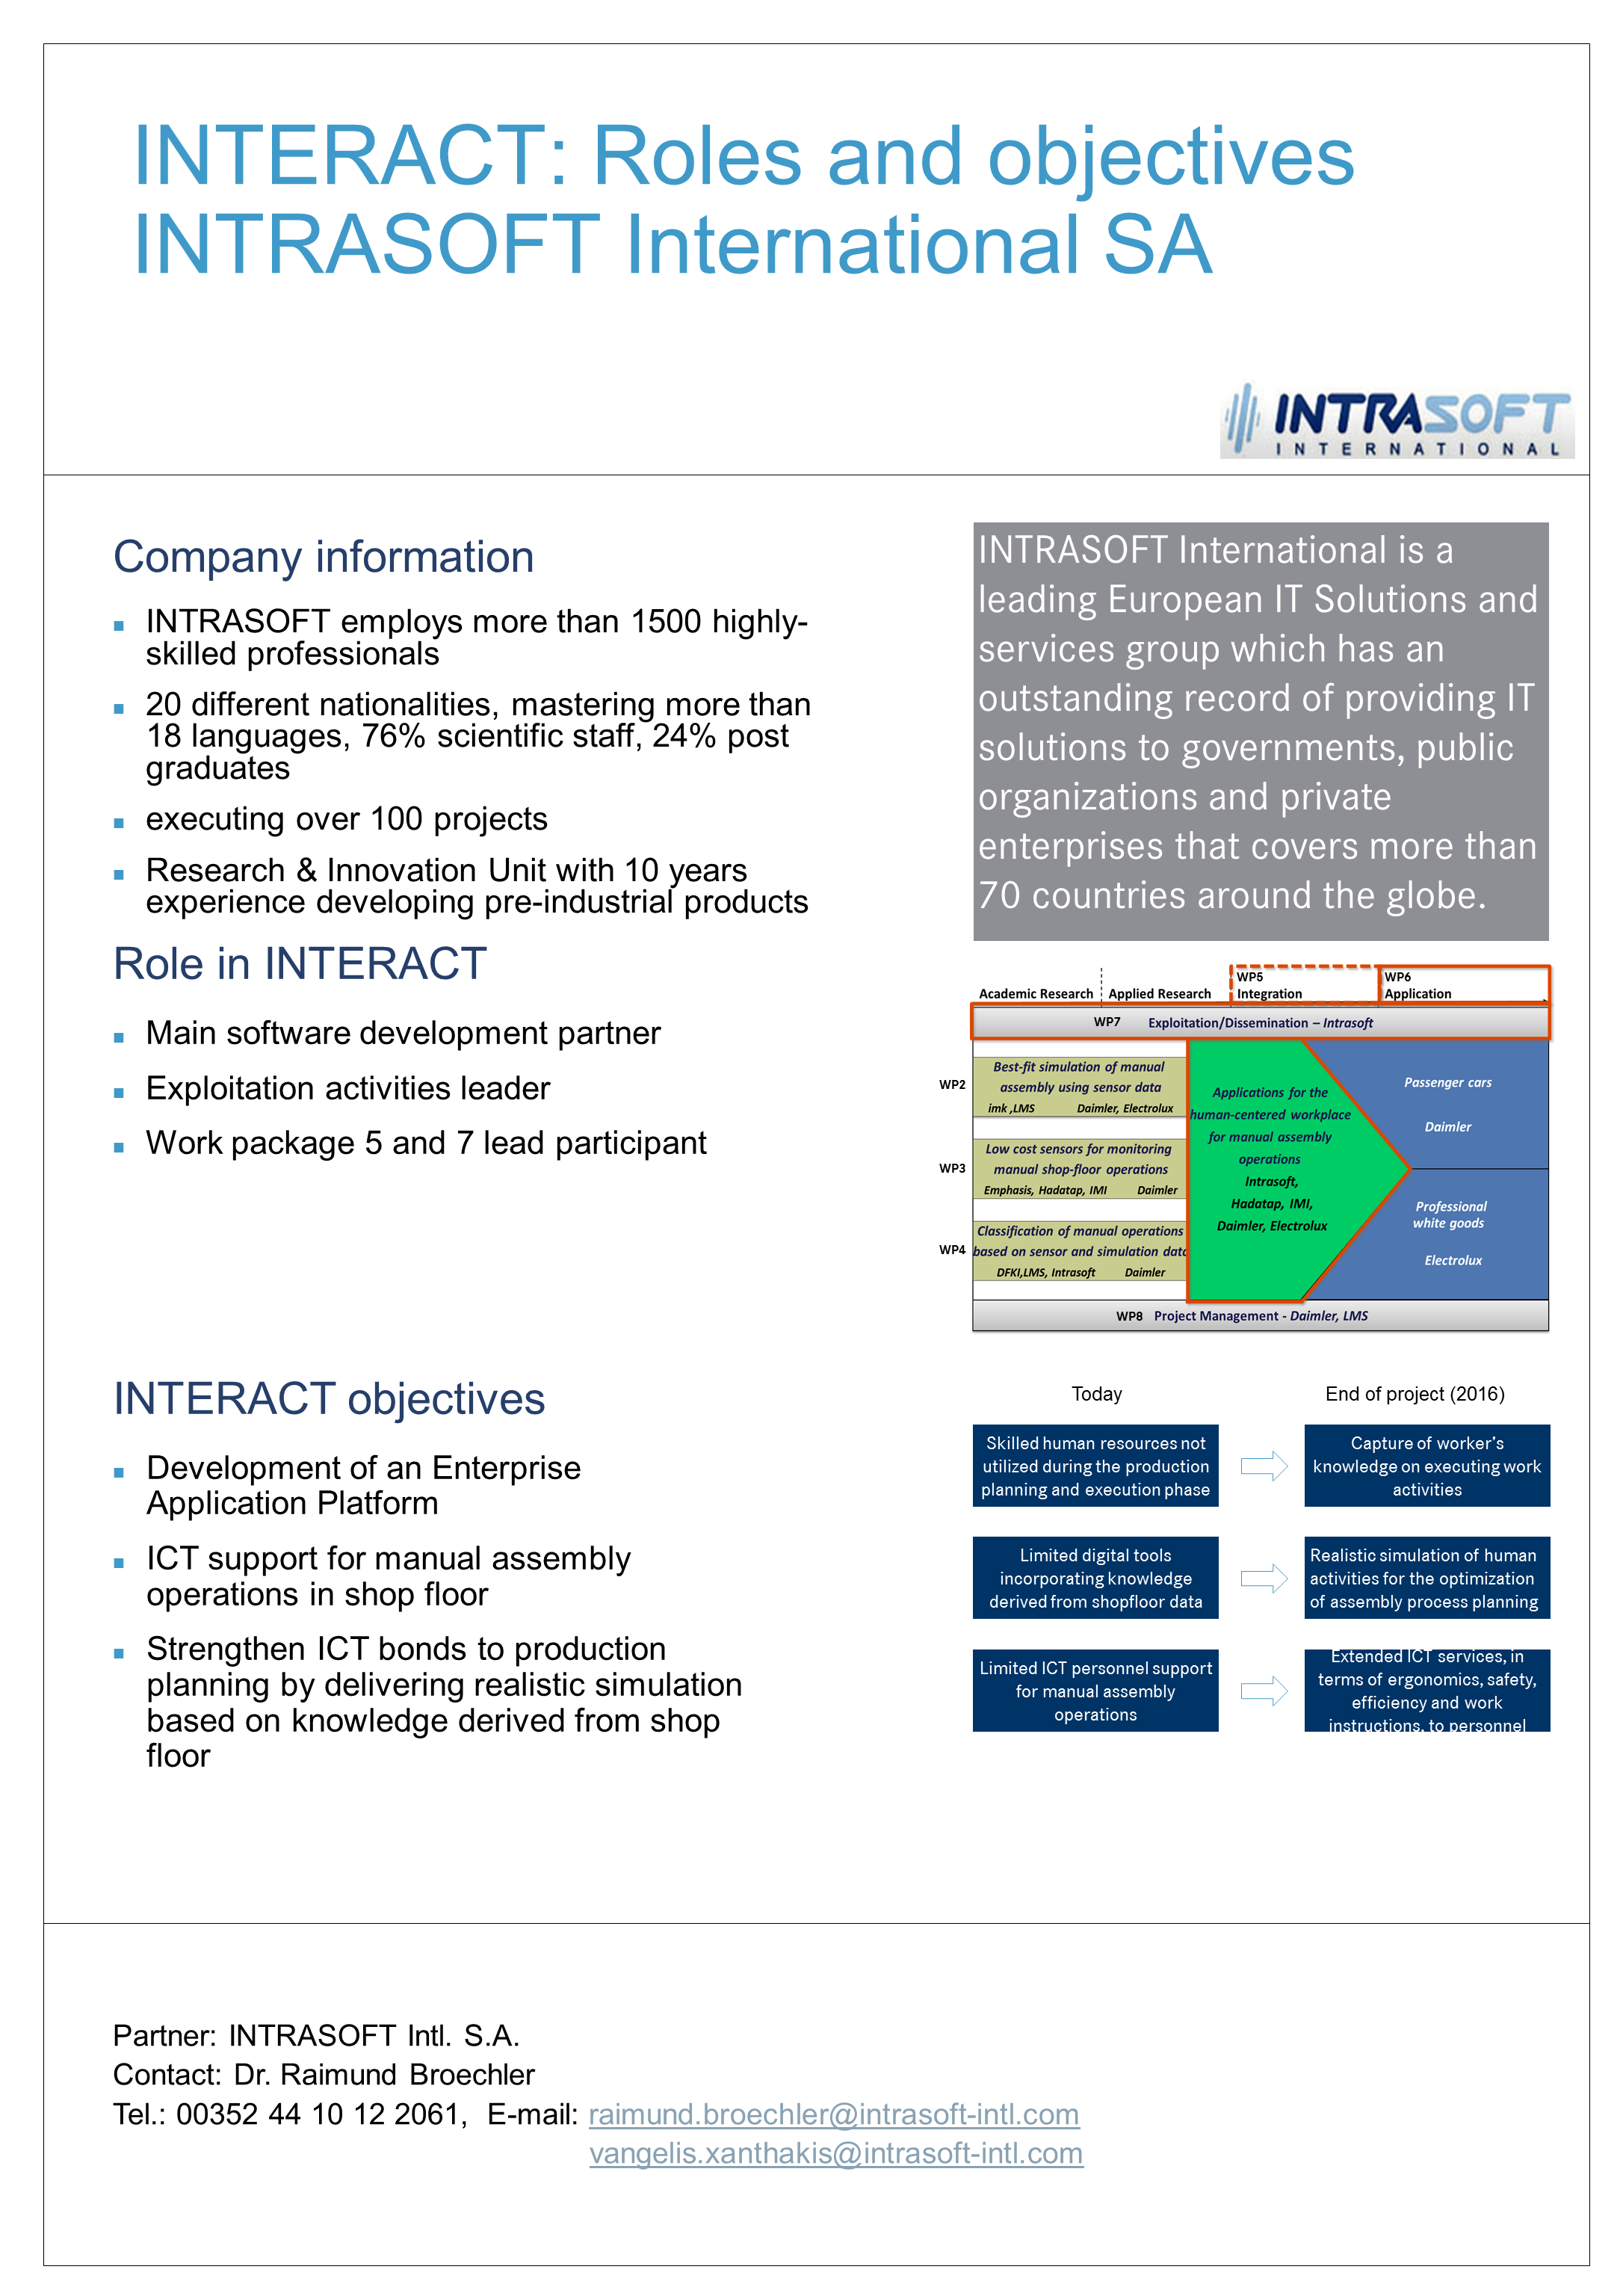 INTERACT Poster INTRASOFT